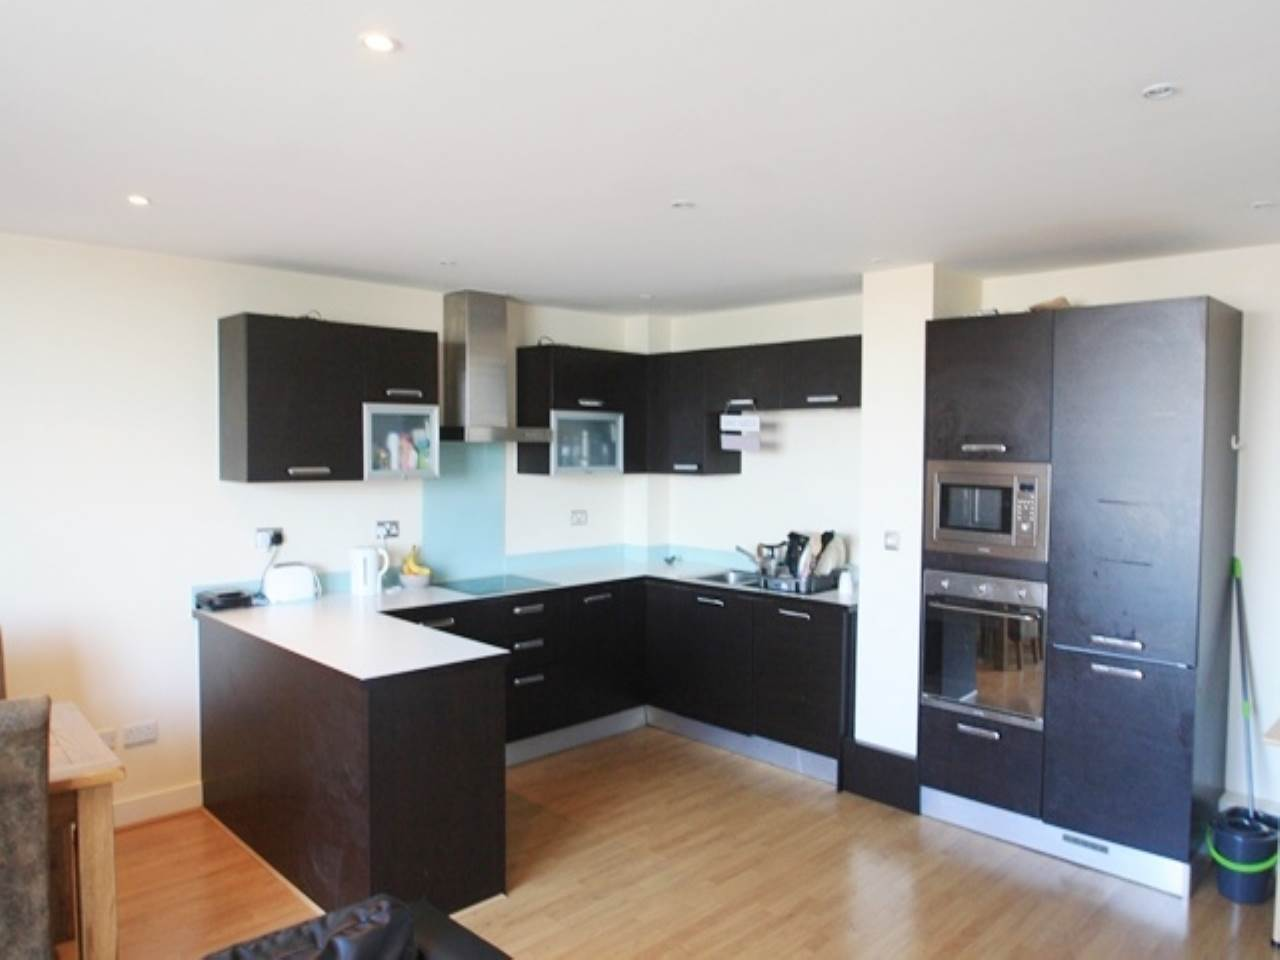 3 bed flat to rent in Royal Docks, E16